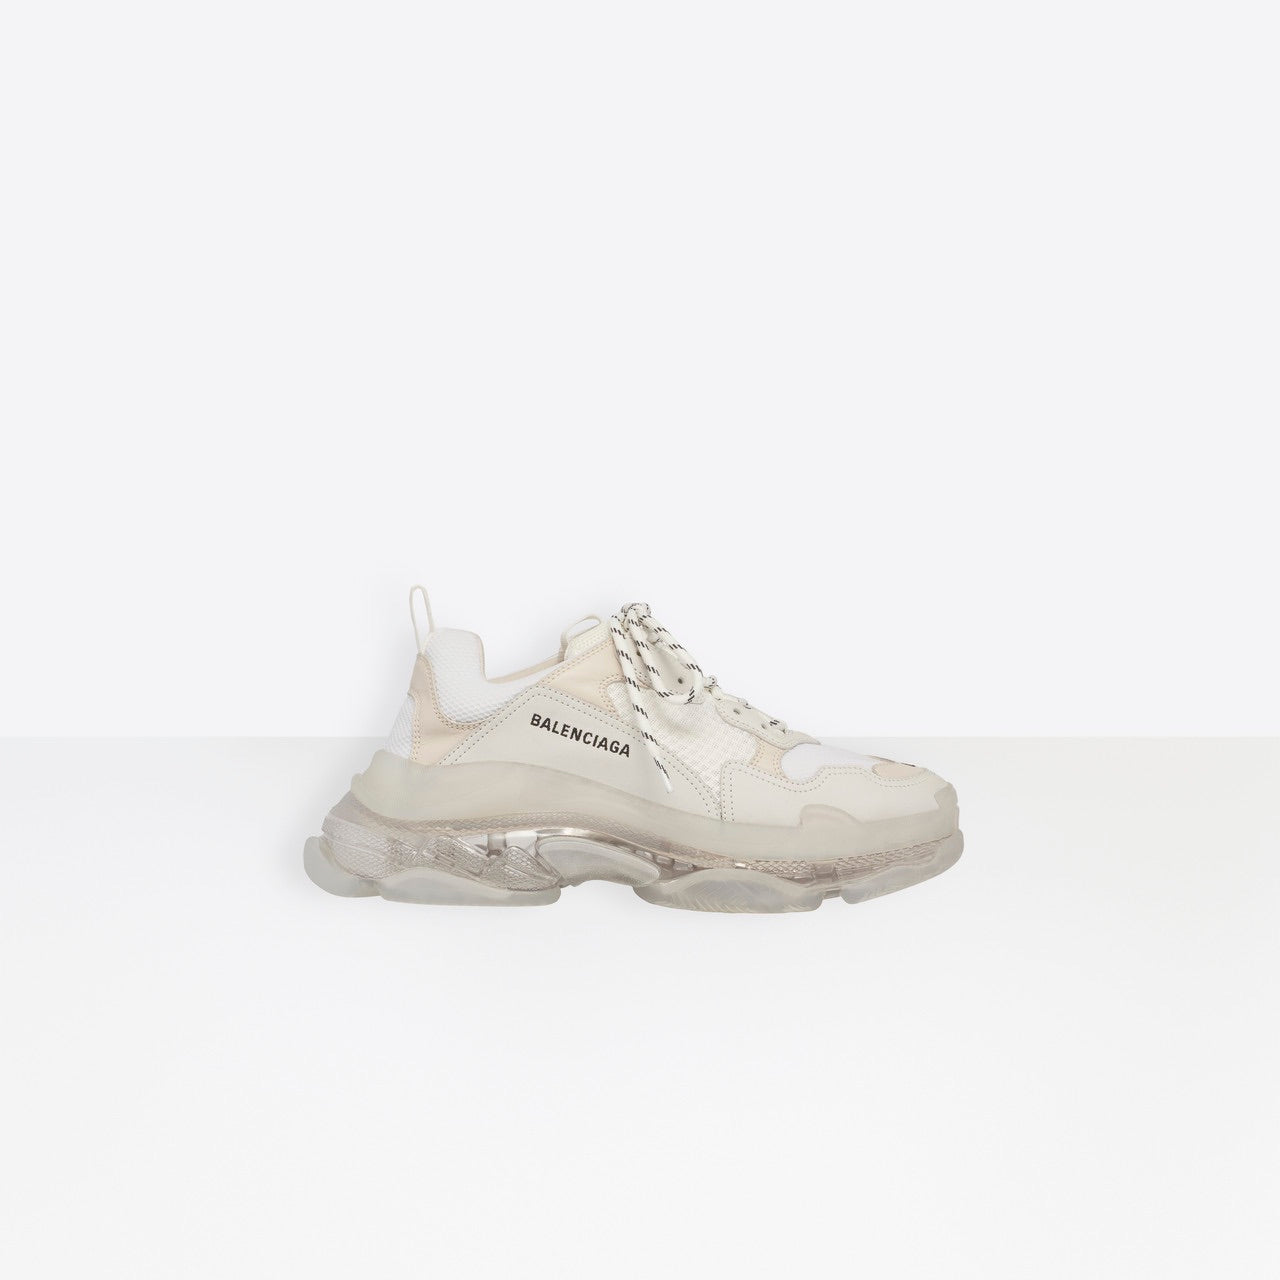 BALENCIAGA sneaker TRIPLE S CLEAR SOLE